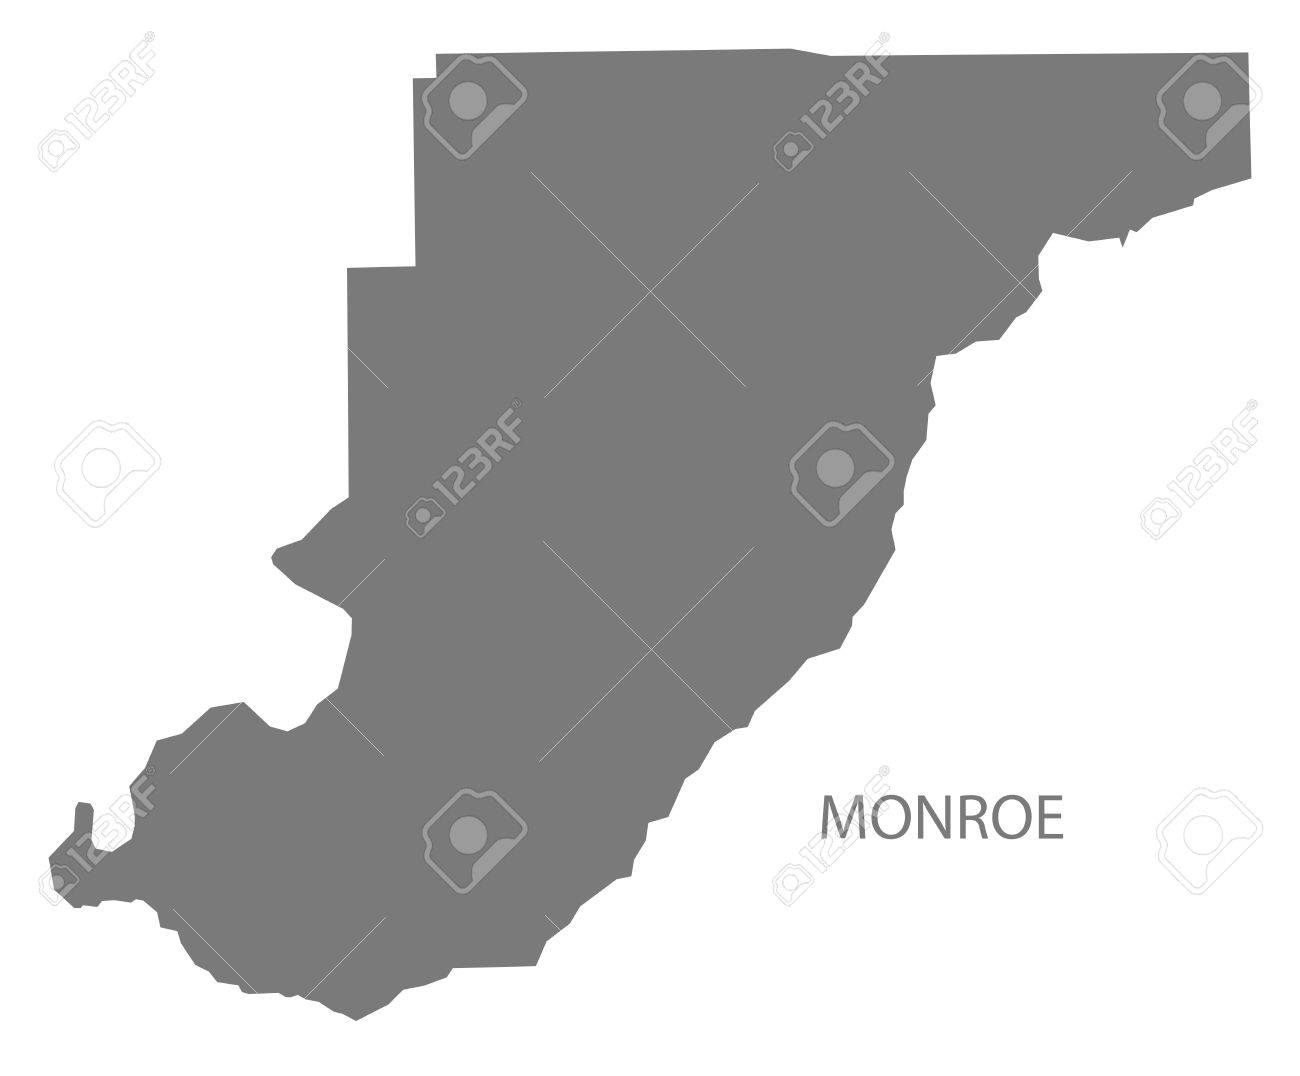 Monroe county map of Alabama USA grey illustration silhouette on map of nevada usa, map of georgia usa, map of st. vincent and the grenadines, map of america usa, map of san antonio usa, map of northeastern usa, map of northwestern usa, map of midwest states usa, map of southern usa, map of the south usa, map of carolinas usa, map delaware usa, map arkansas usa, map of washington dc usa, map of richmond usa, map of mexico usa, map of southeast usa, map of boston usa, colorado map usa, map of pacific northwest usa,